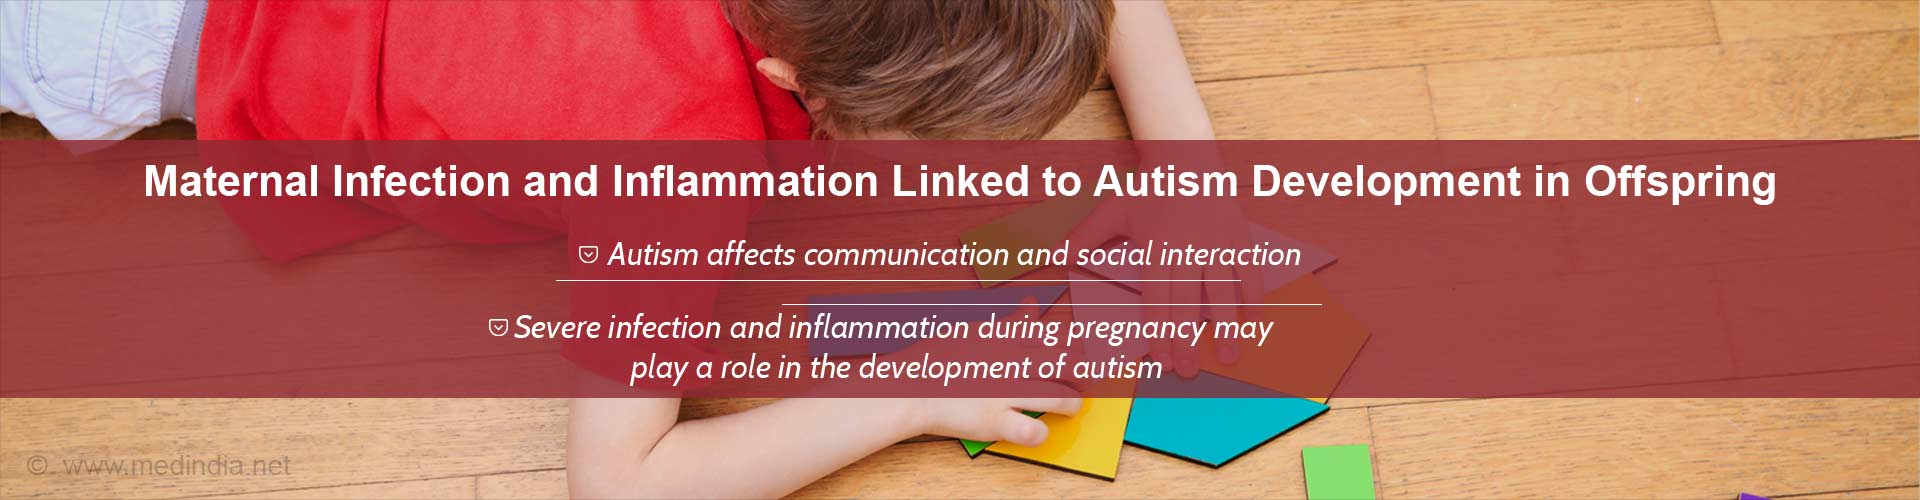 Possible Mechanisms of Autism Development Explored